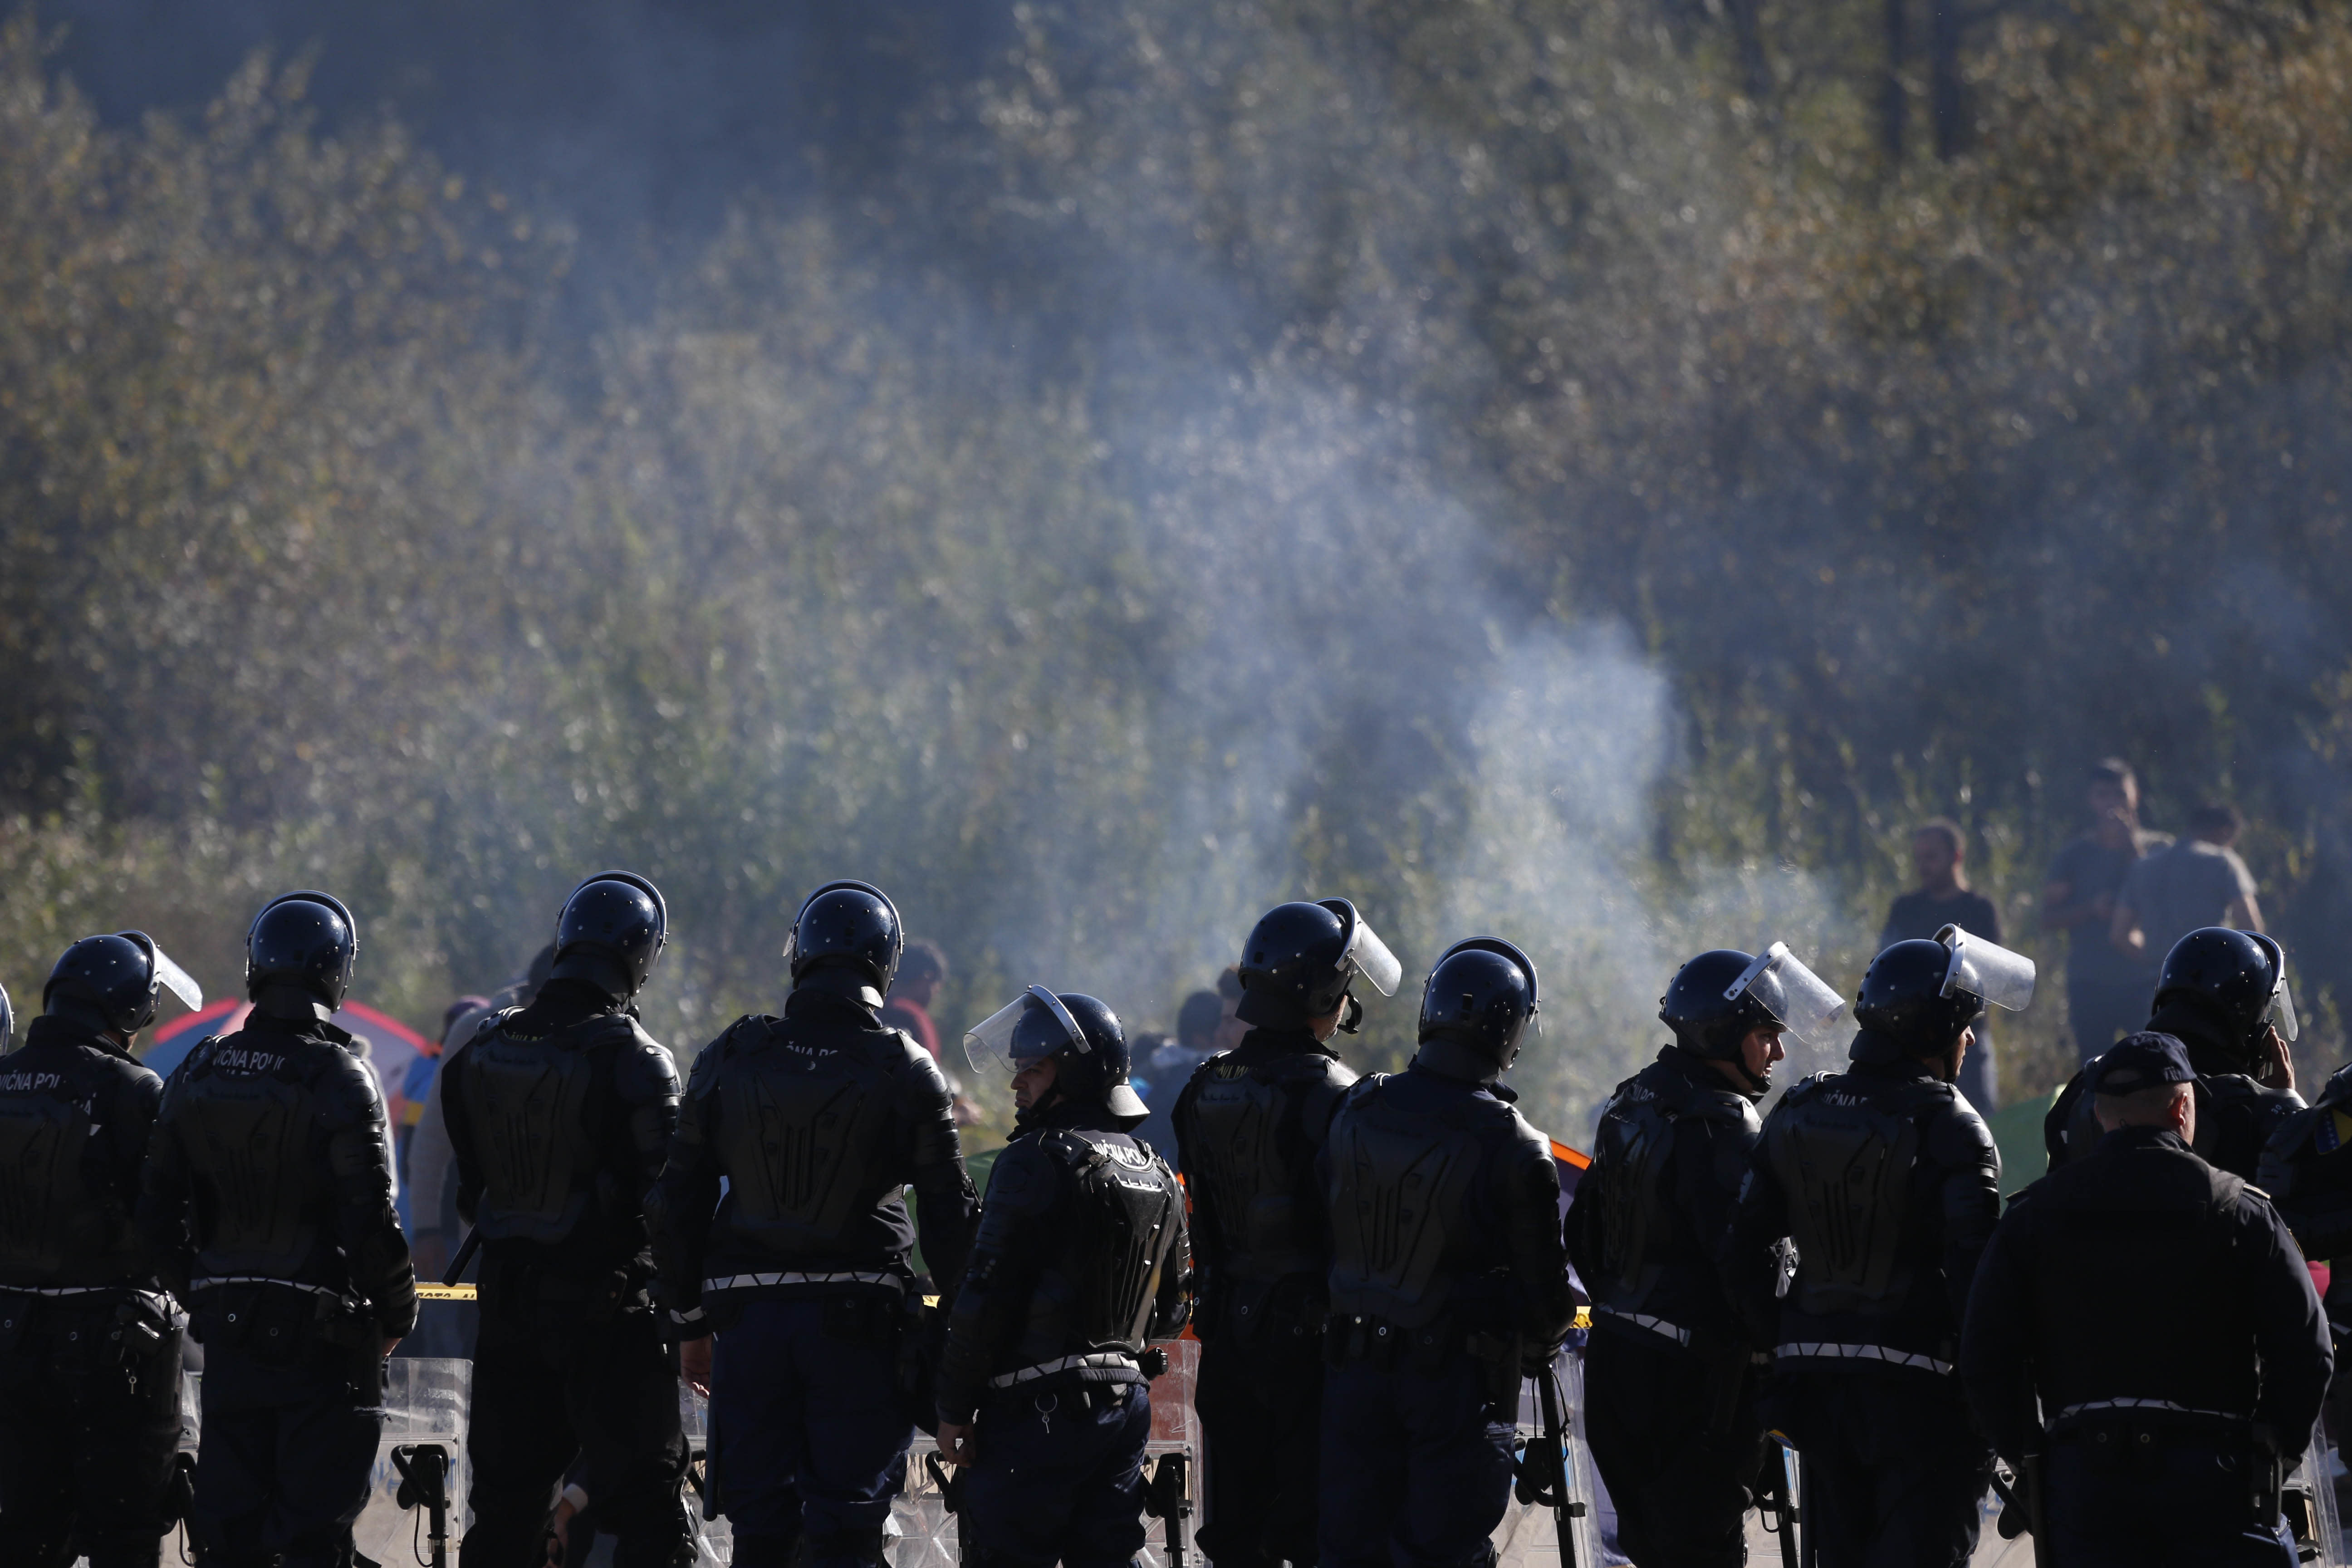 Bosnian police forces secure a road in Maljevac, Bosnia, near to the border with Croatia, Thursday, Oct. 25, 2018. Bosnian police say three officers and three migrants have been hurt in skirmishes on the border with Croatia where dozens of people have been trying to cross into the European Union country.(AP Photo/Amel Emric)